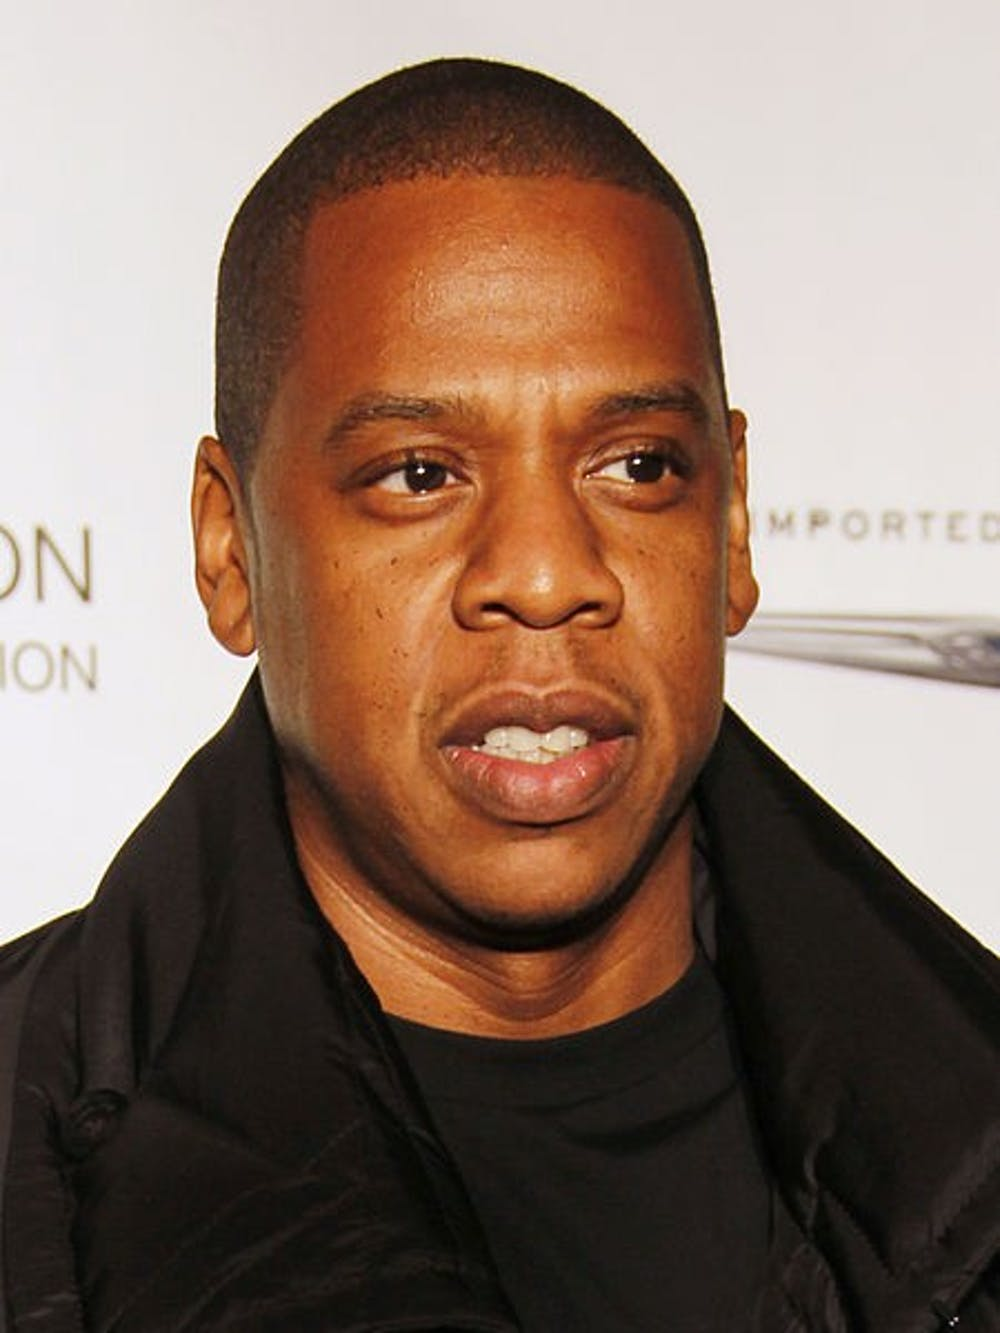 Is Tidal's wave going to crash?